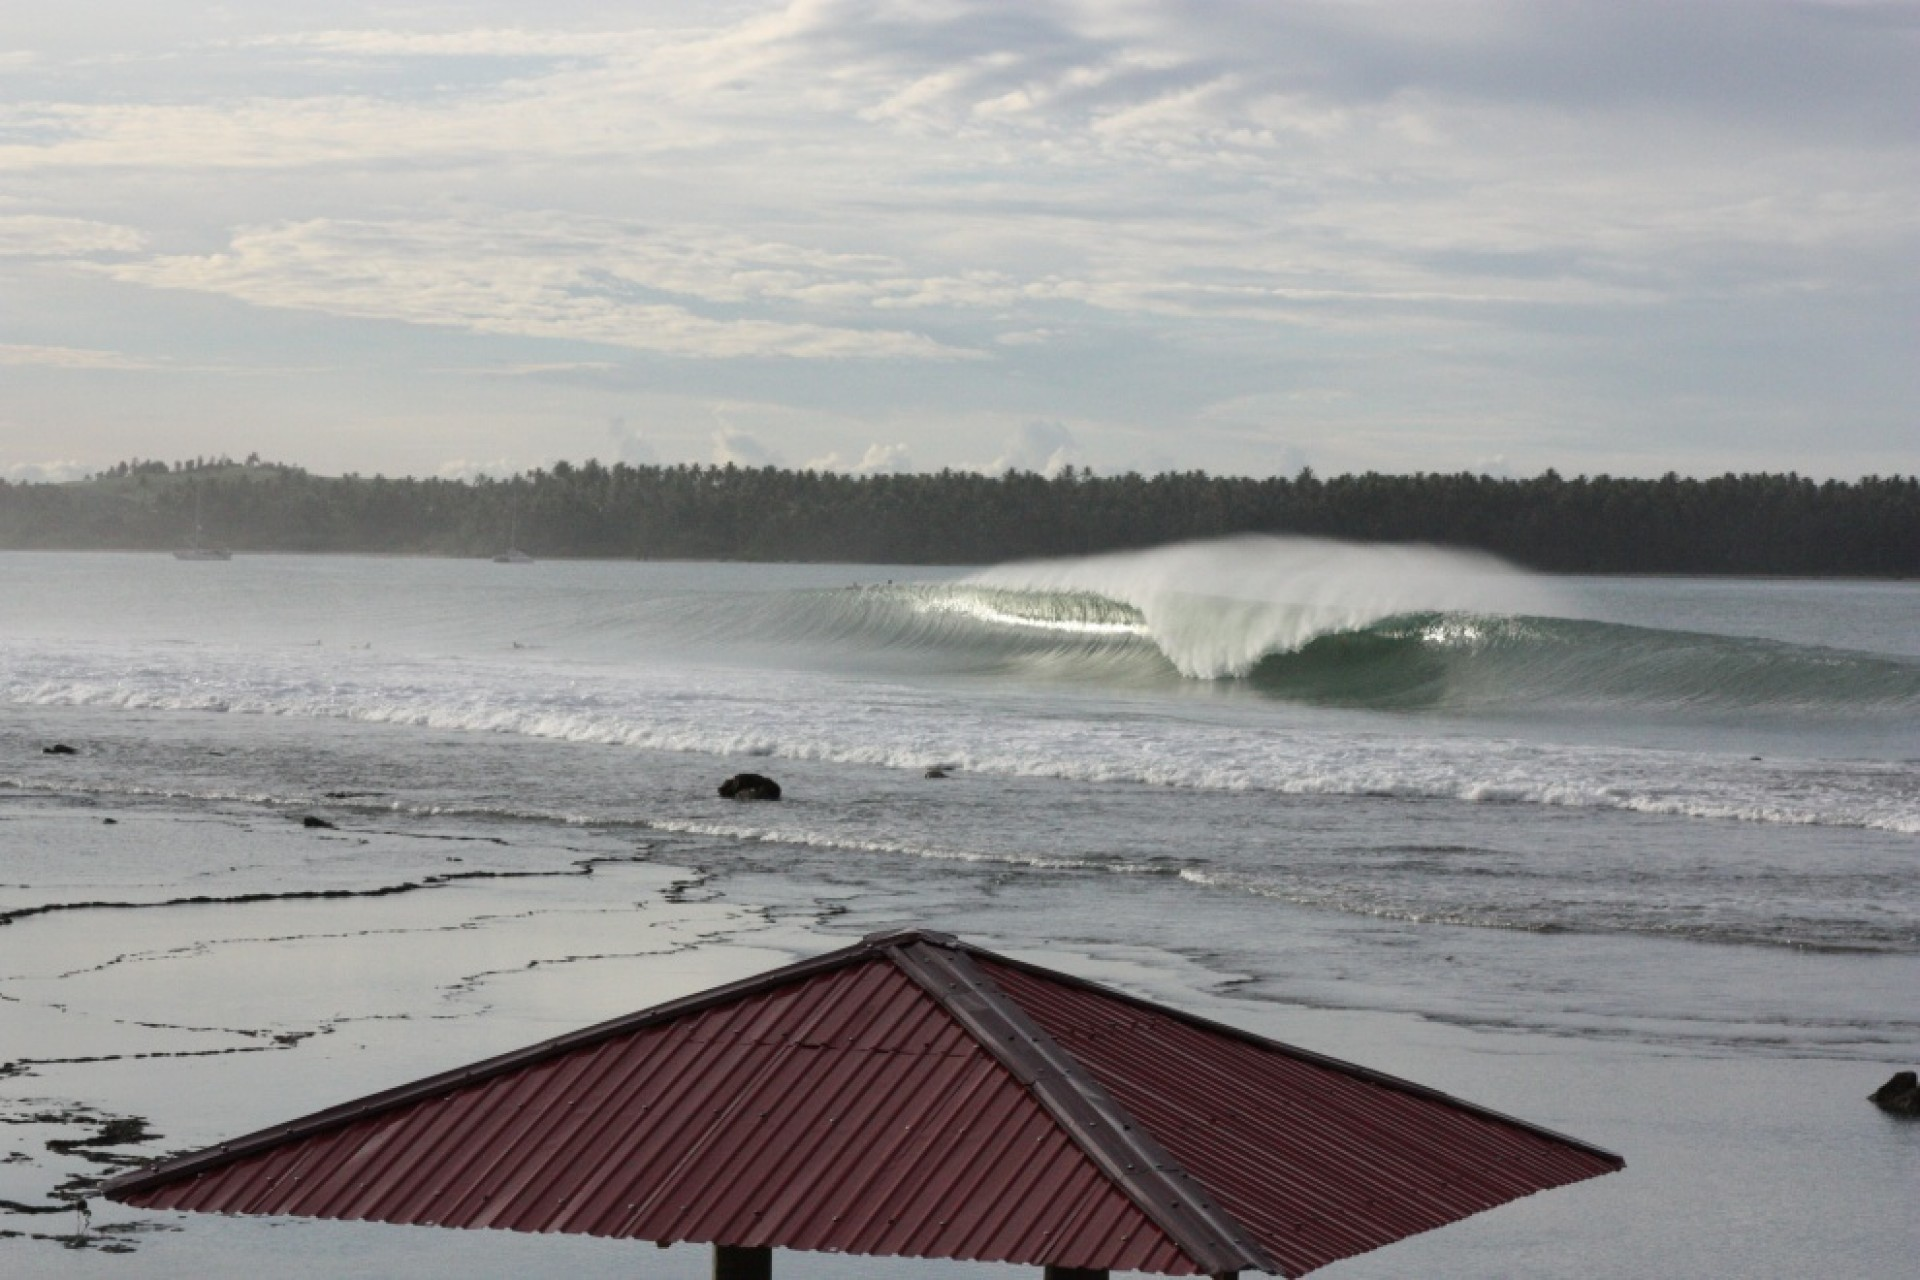 Connor MacLeod's photo of Lagundri Bay - The Point